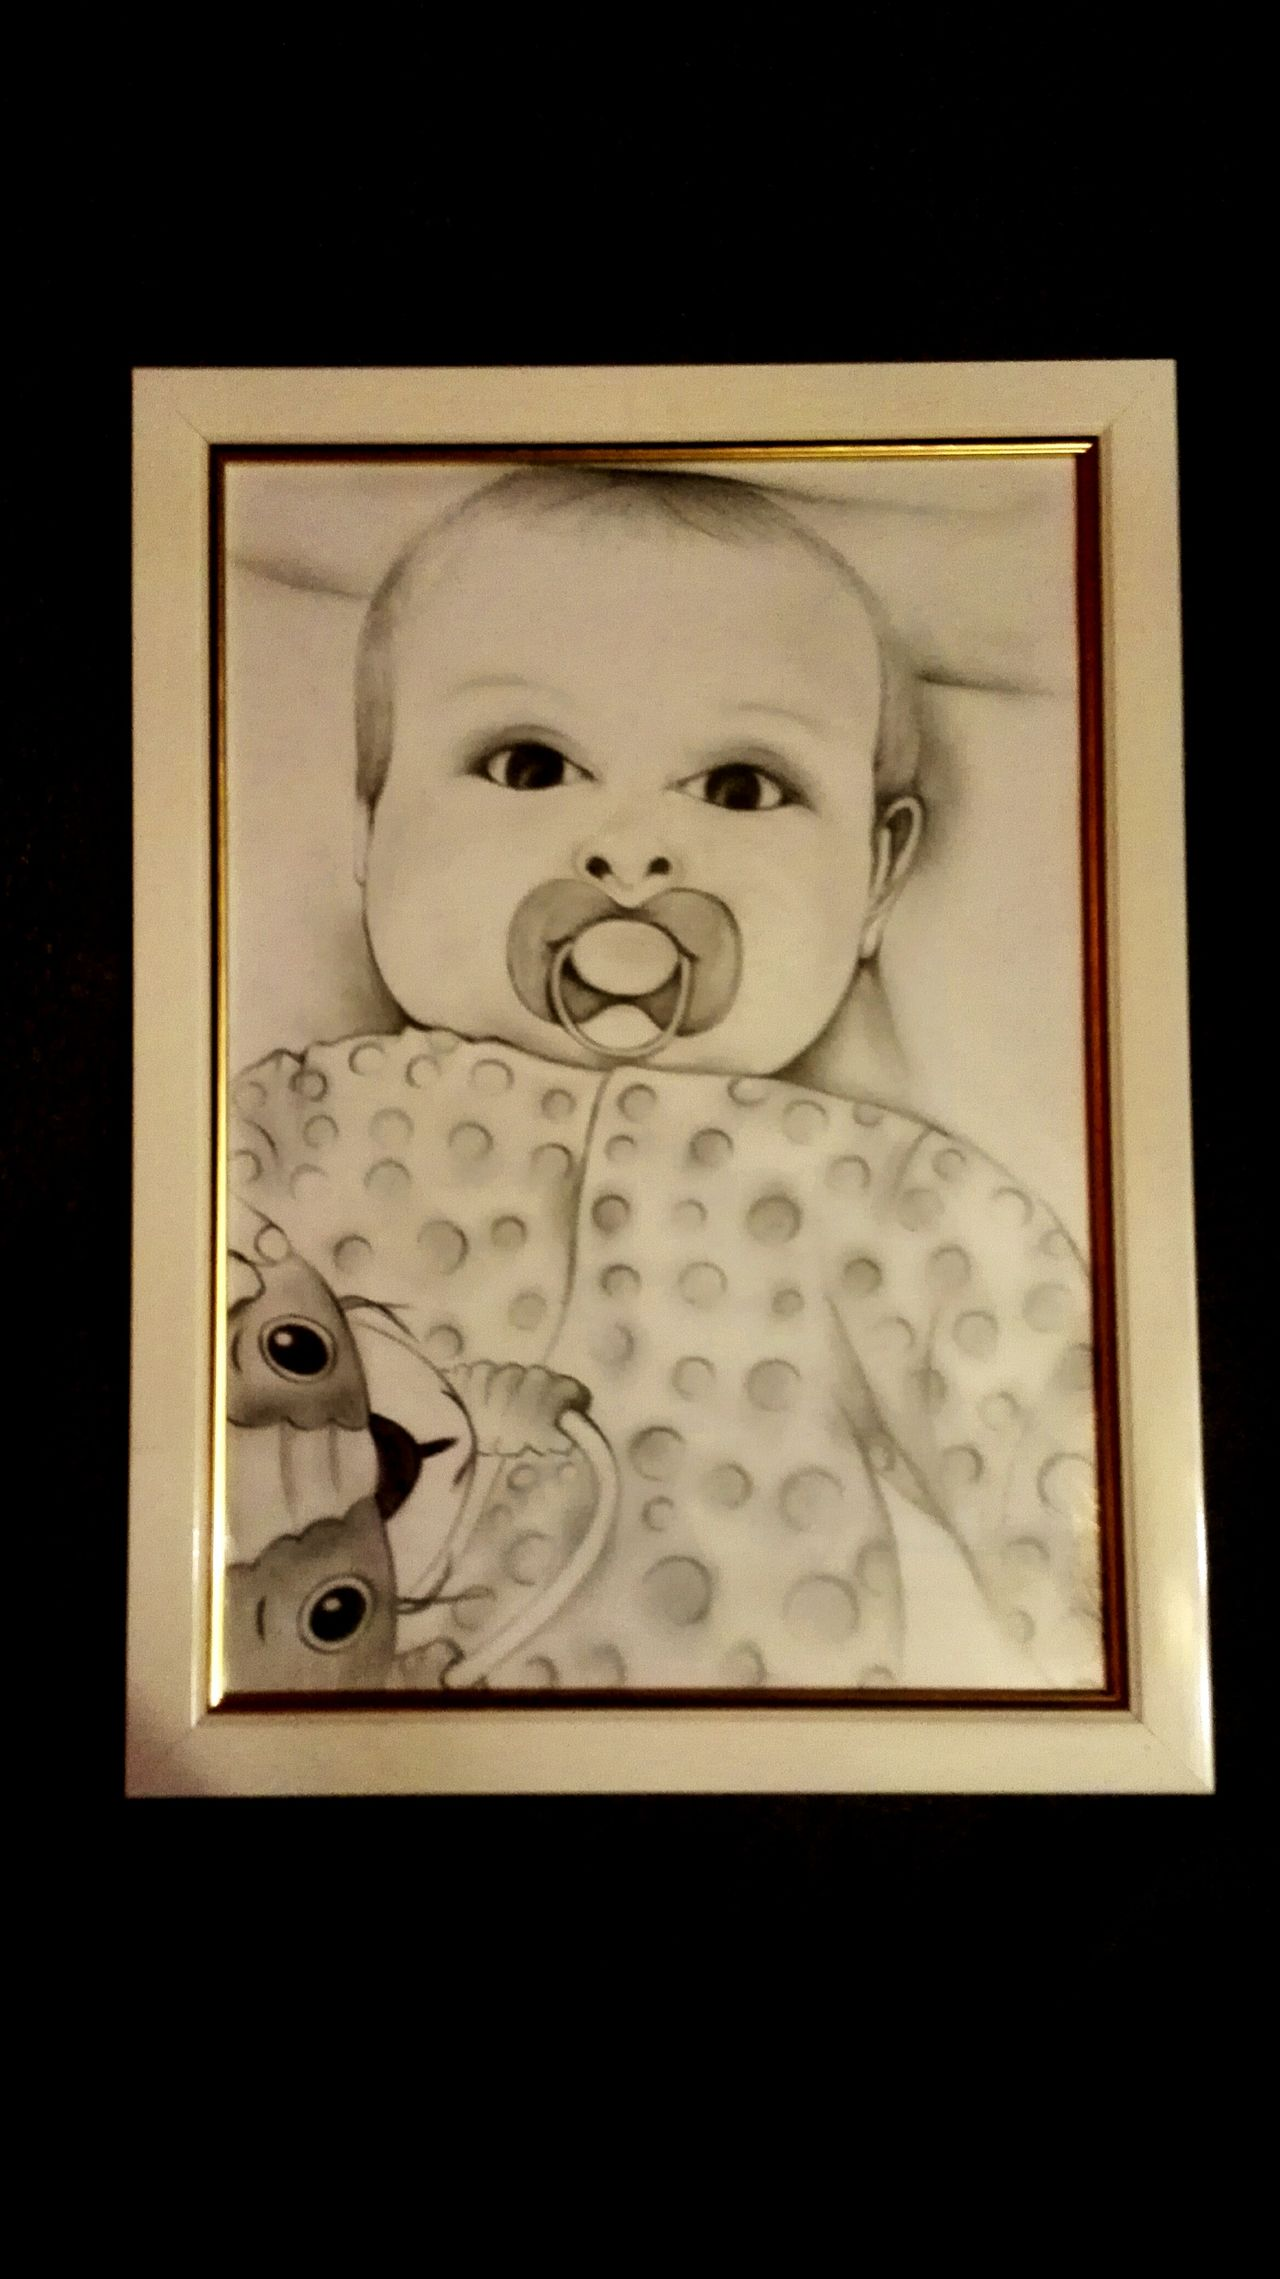 My Draw ♥ Drawing ✏ Baby ❤